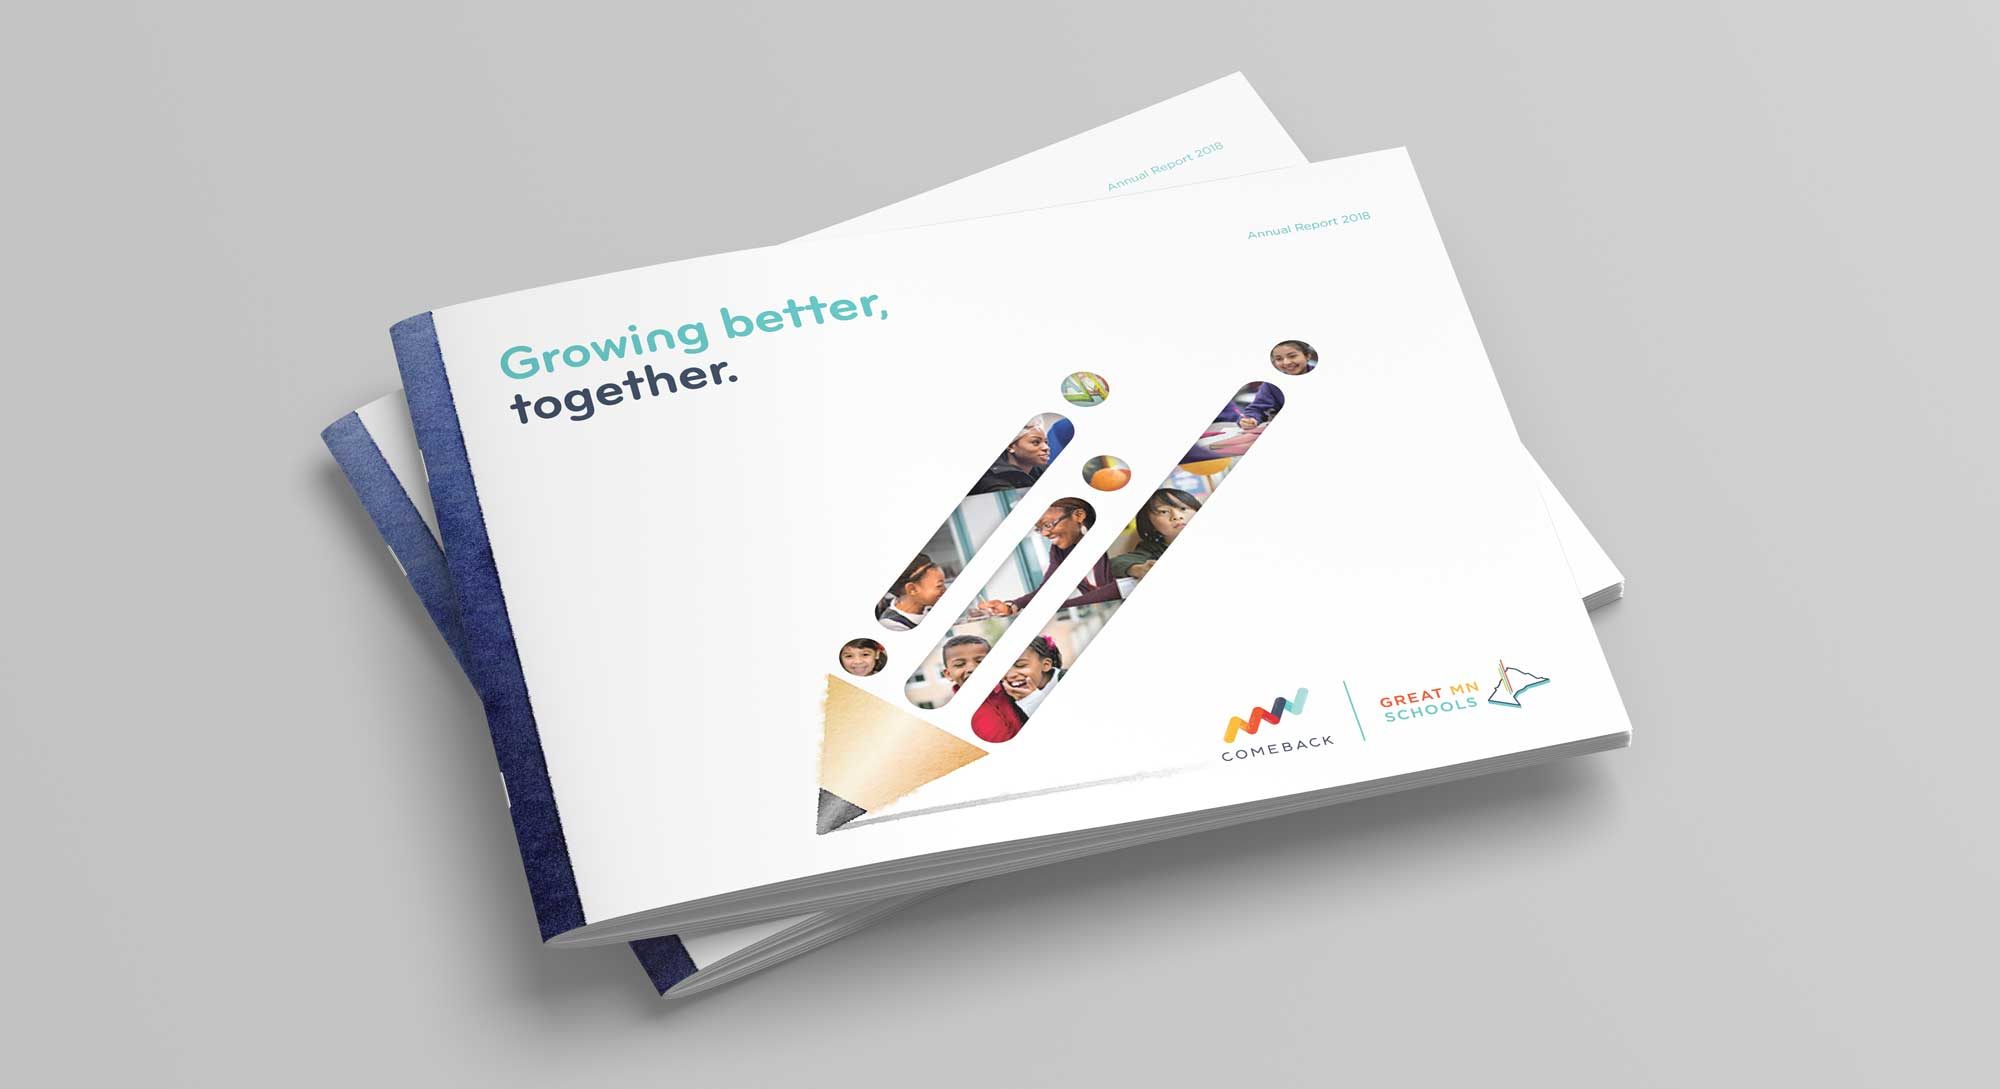 Great Schools 2018 Annual Report Cover